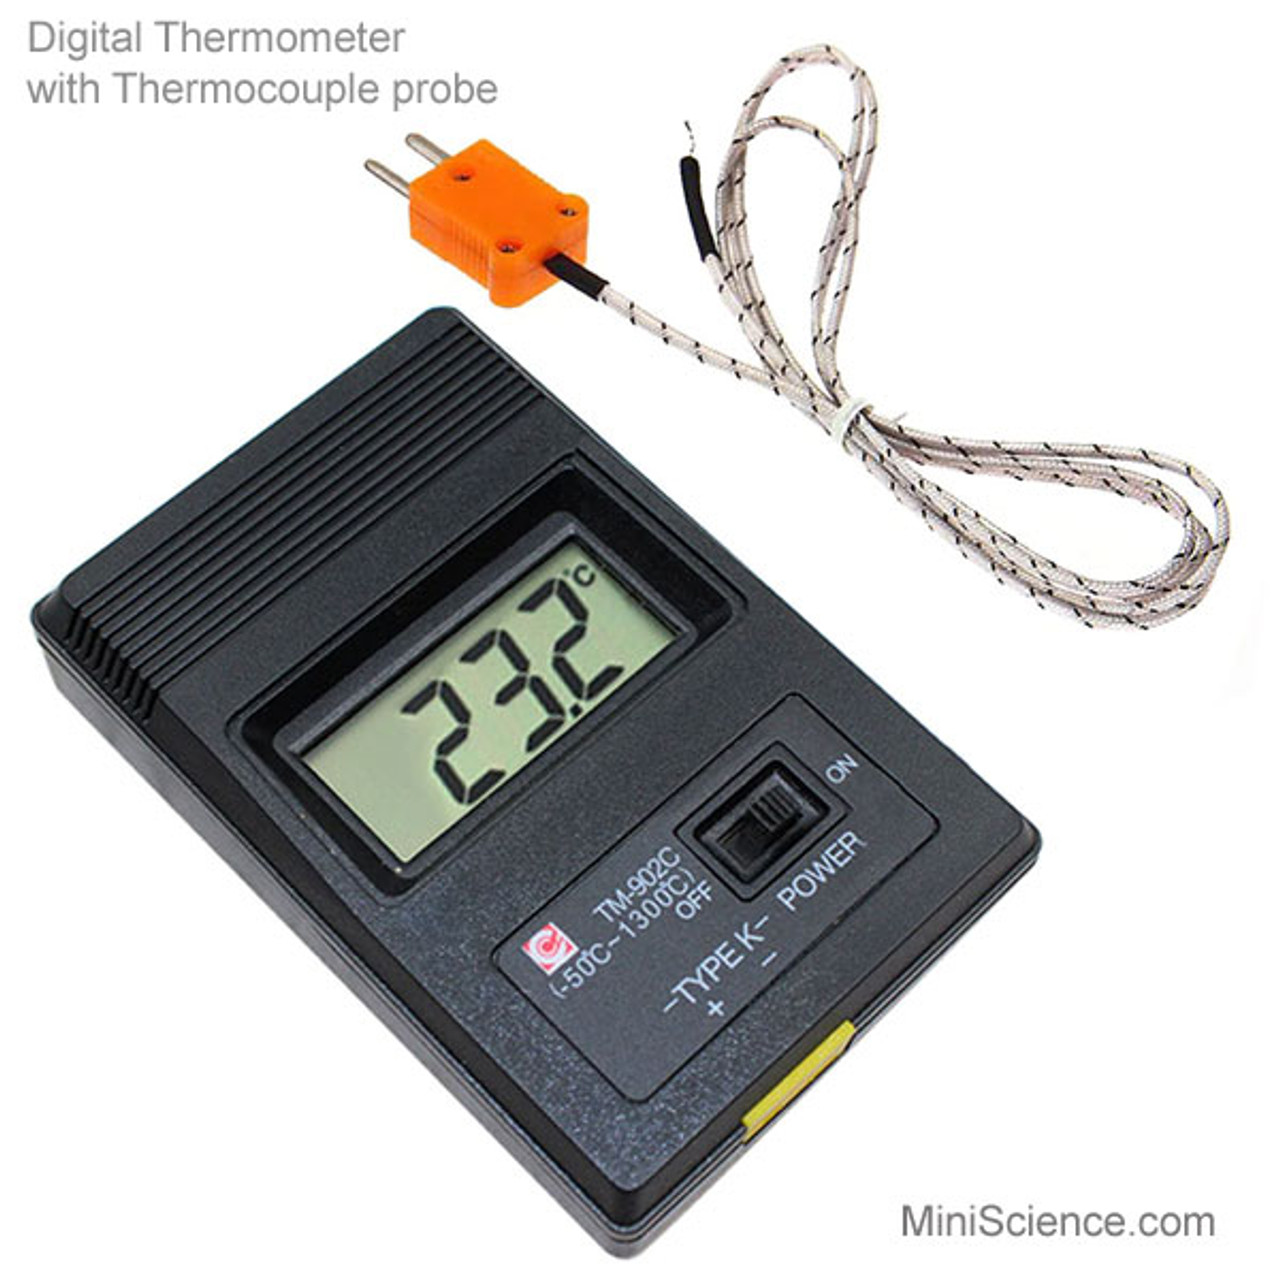 Digital thermometer with thermocouple probe.